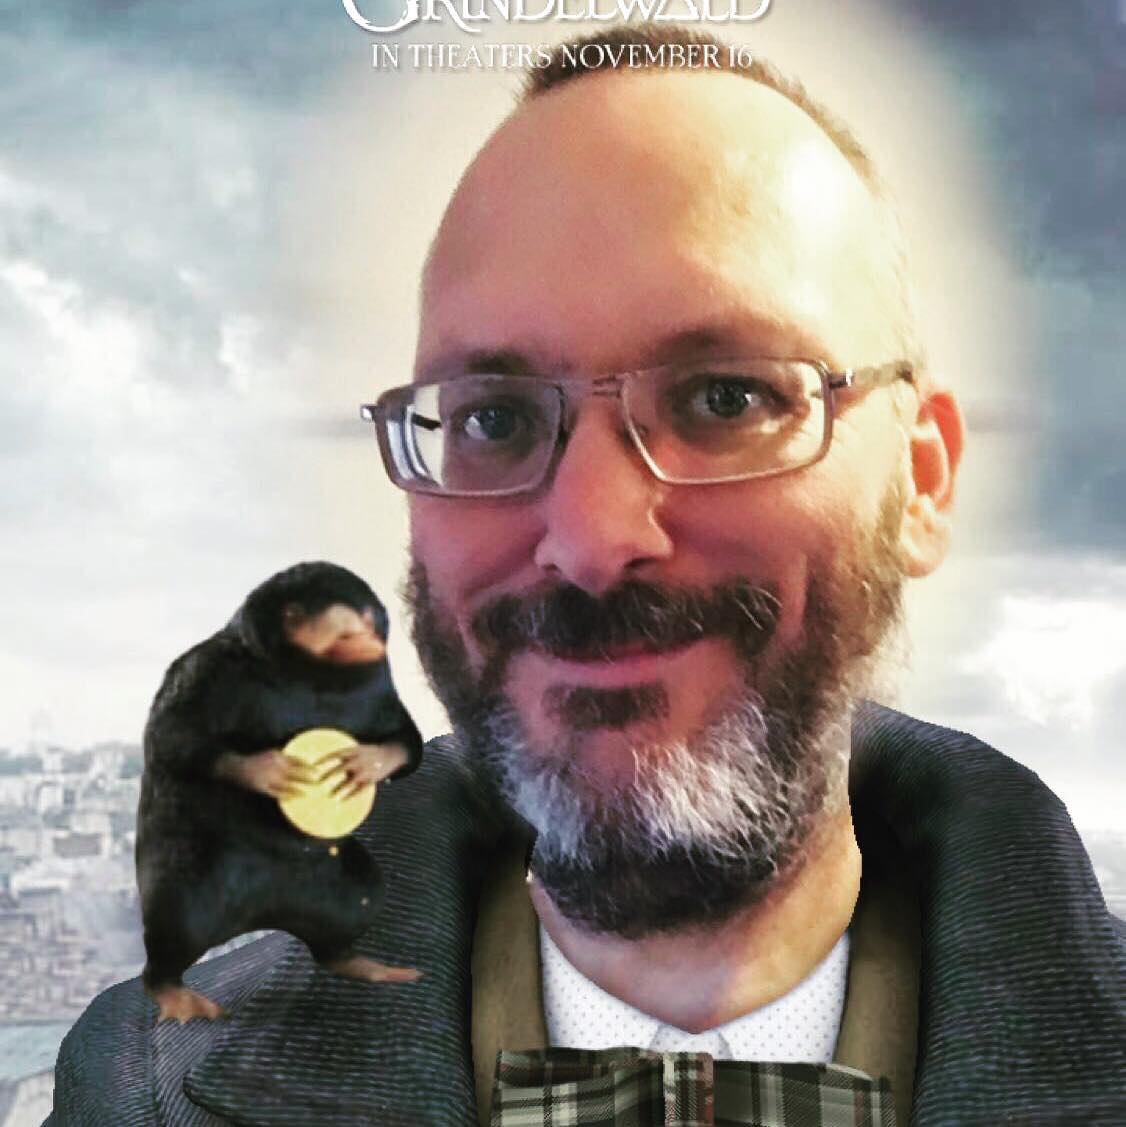 BMAF Bill with a Niffler using the Snapchat filter